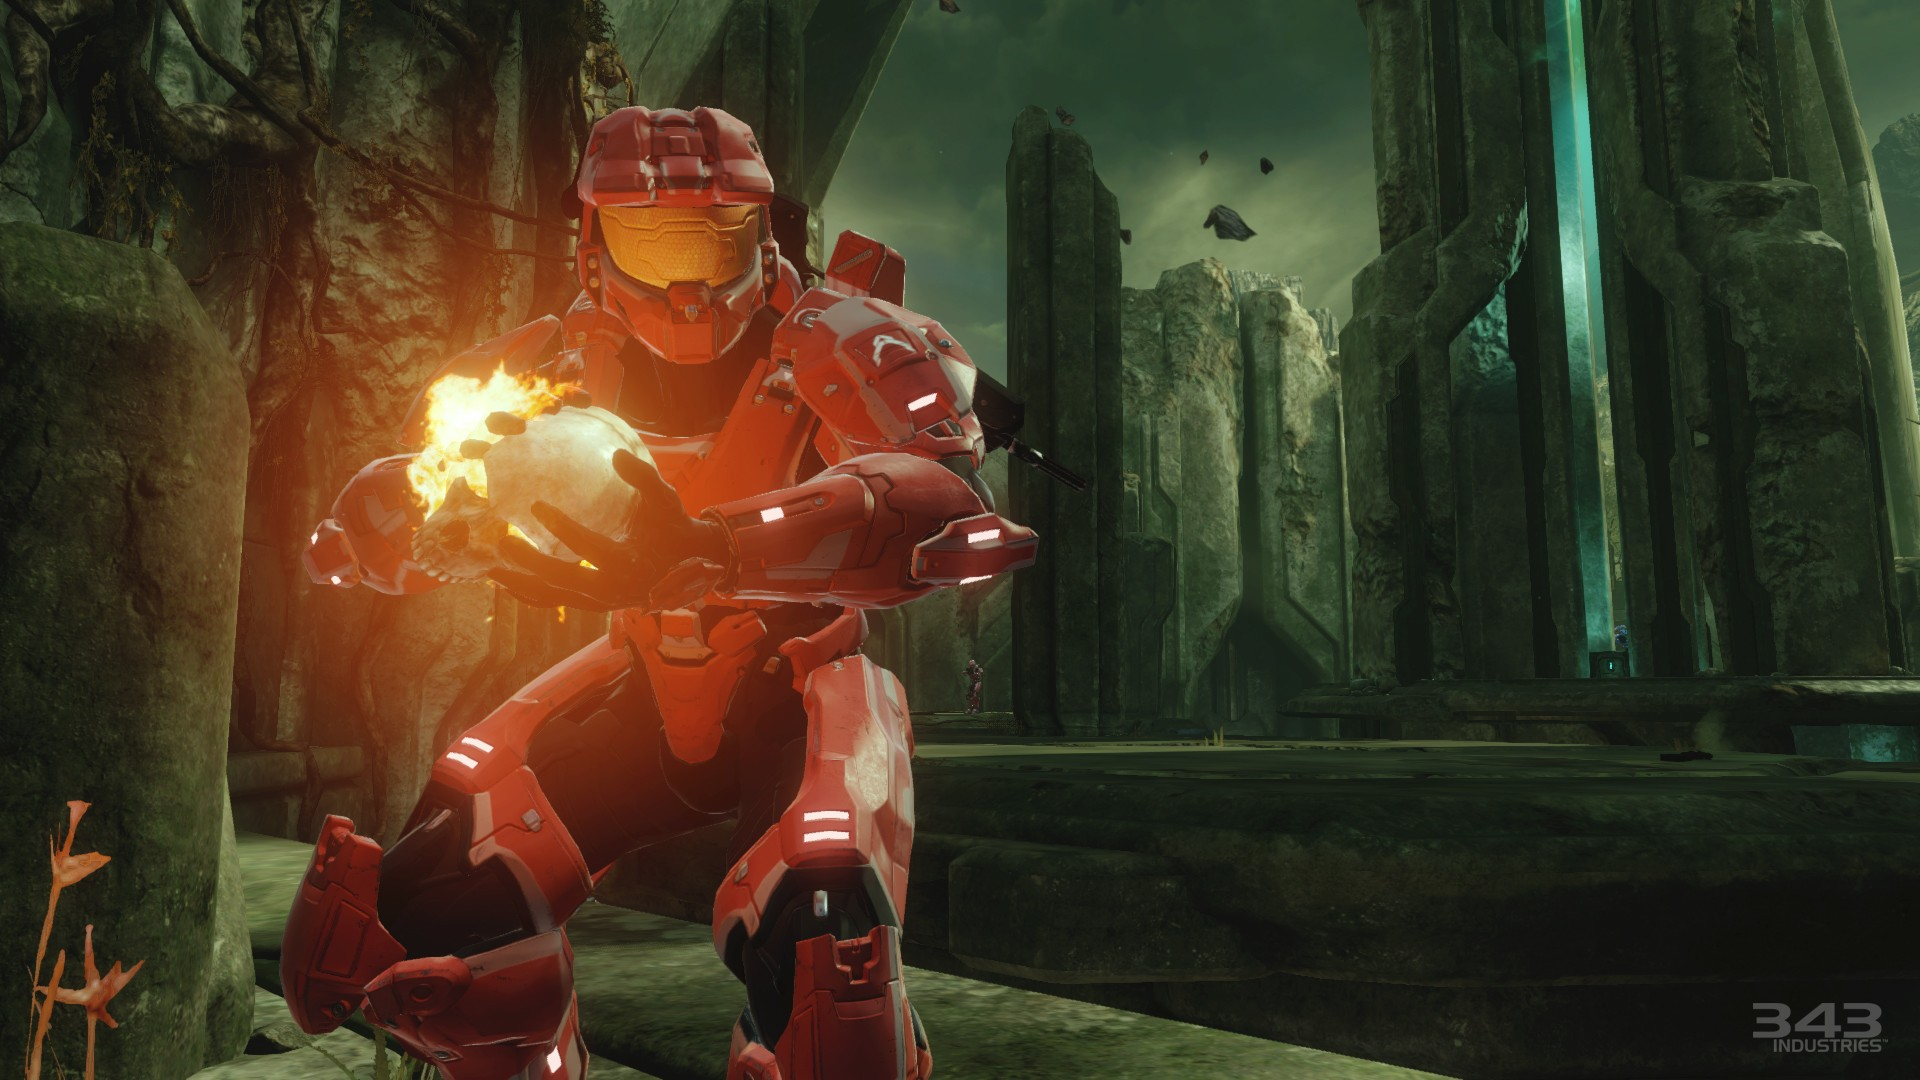 Halo: The Master Chief Collection Playlists Updated, Halo CE